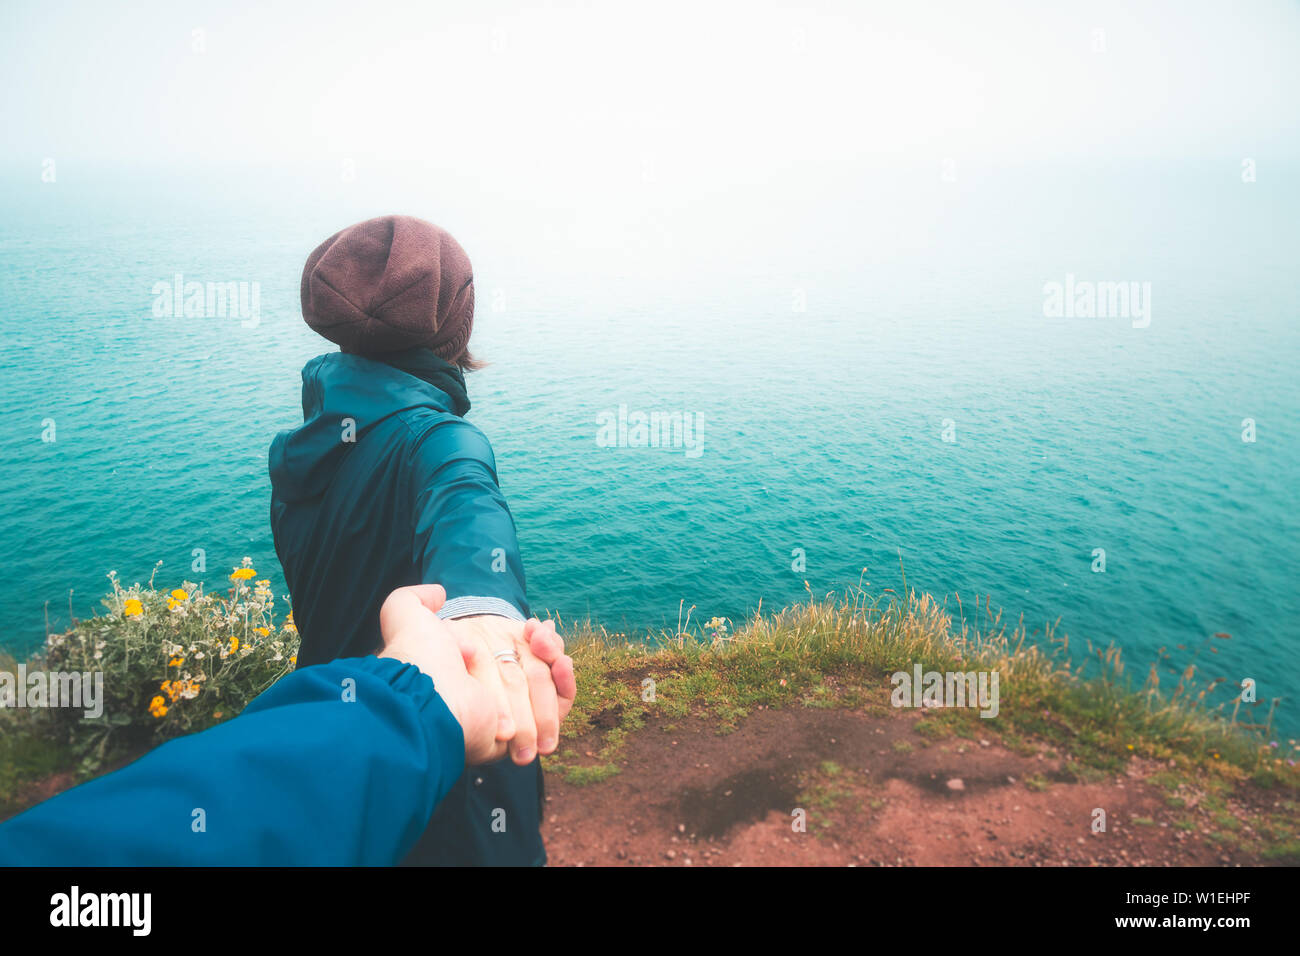 Follow me. Girl taking hand of her boyfriend walking to the cliff edge overlooking the sea on a moody and rainy day. Outdoors travel concept Stock Photo